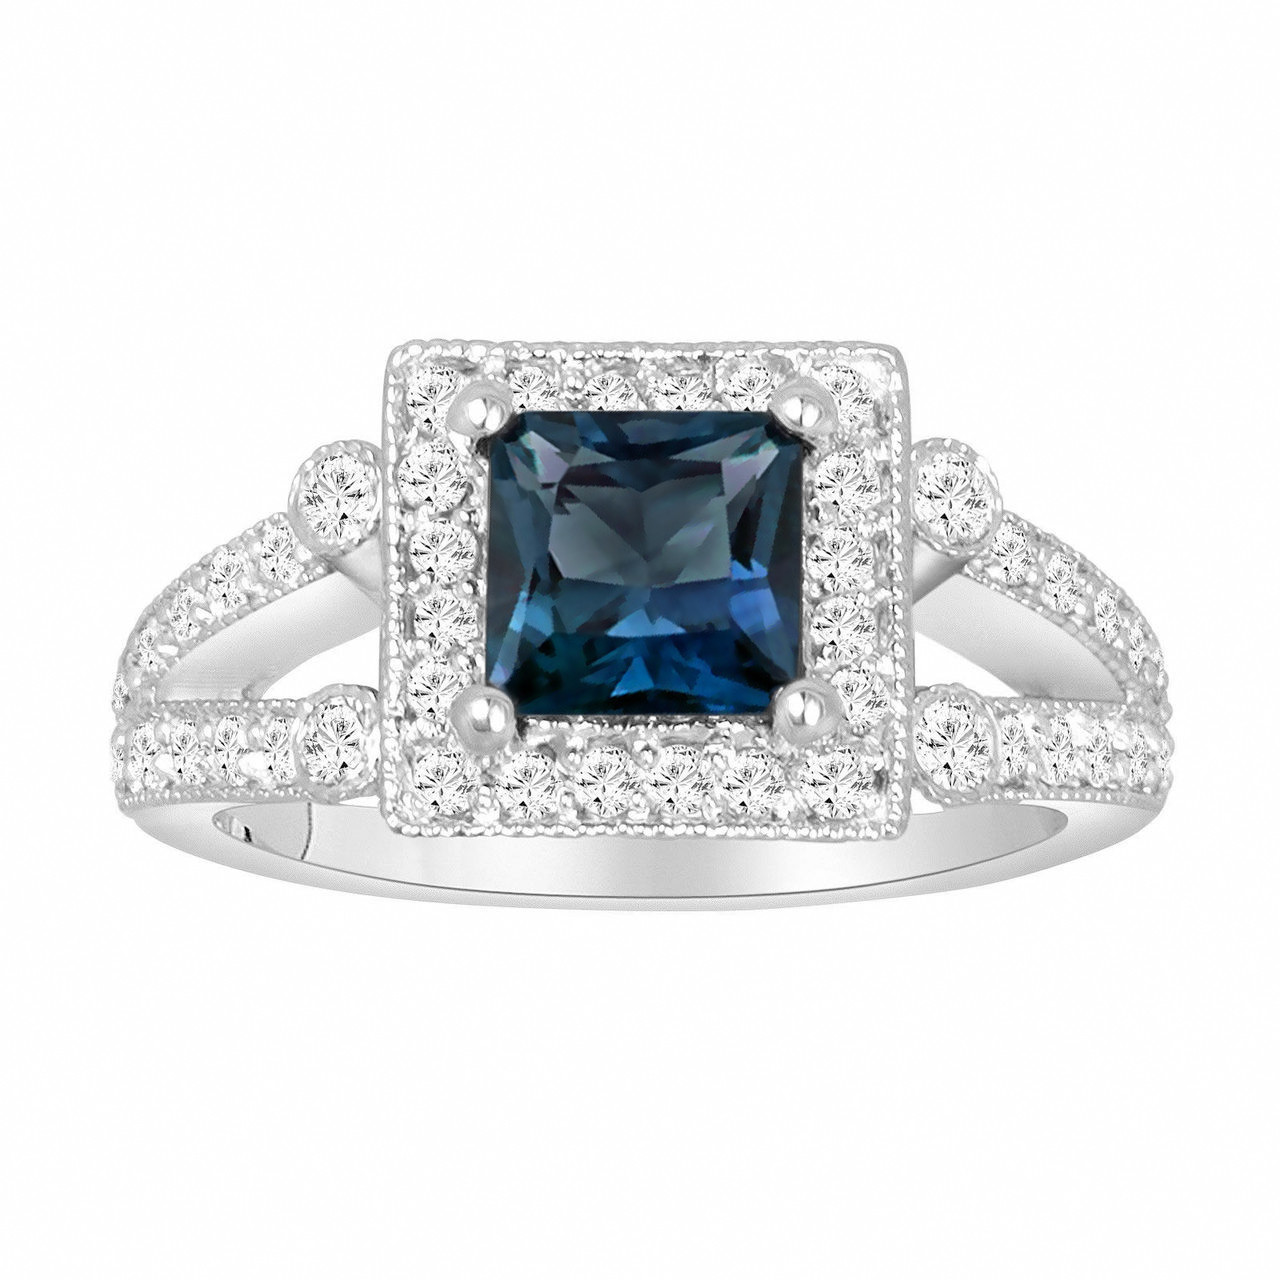 Fine Jewelry 1.37 Ct Blue Topaz And Diamonds Ring 14k White Gold Natural With Latest Technology